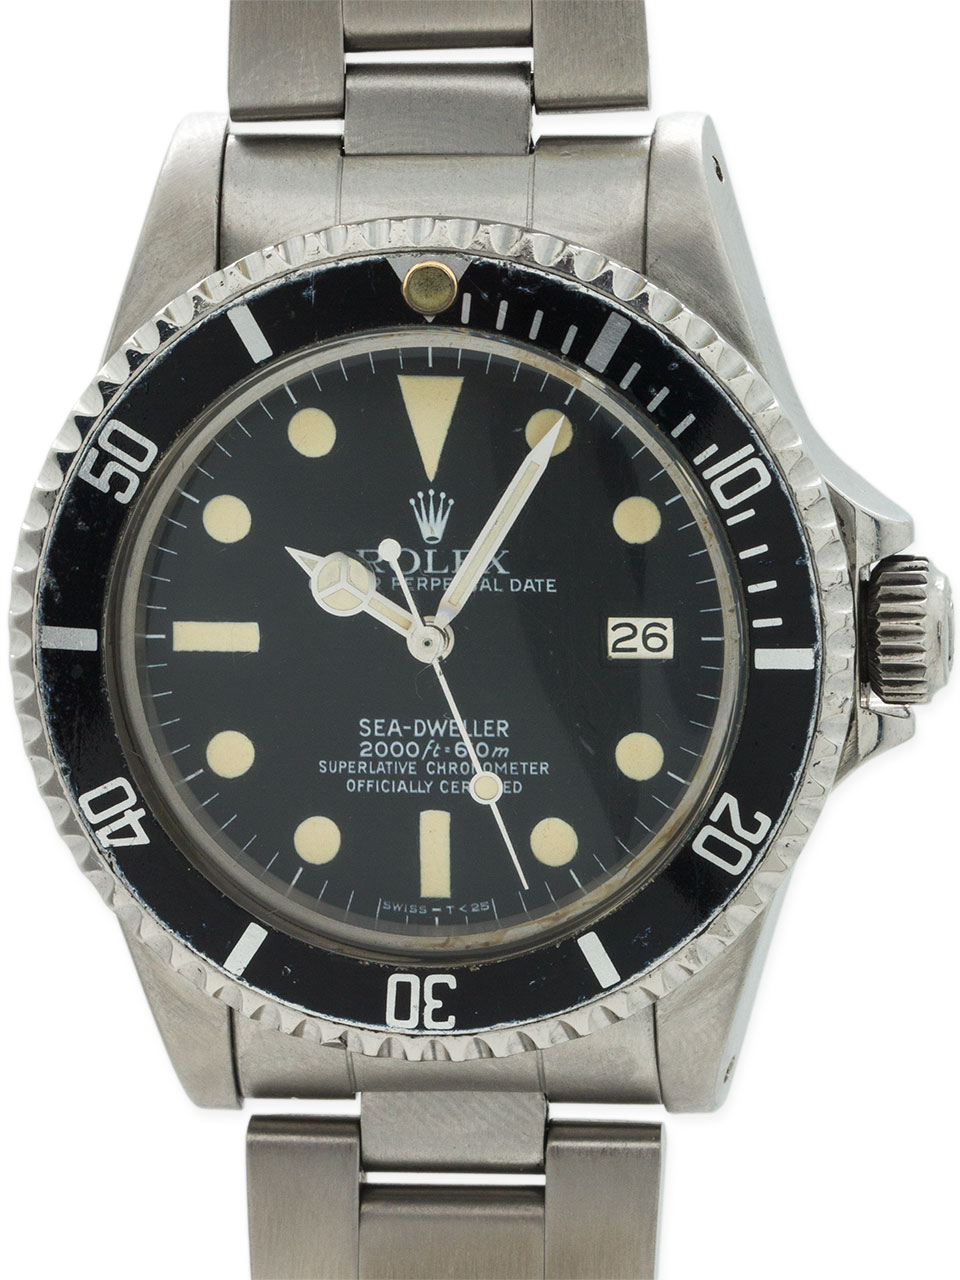 "Rolex Seadweller ref 1665 ""Great White"" circa 1979 Full Set B & P"